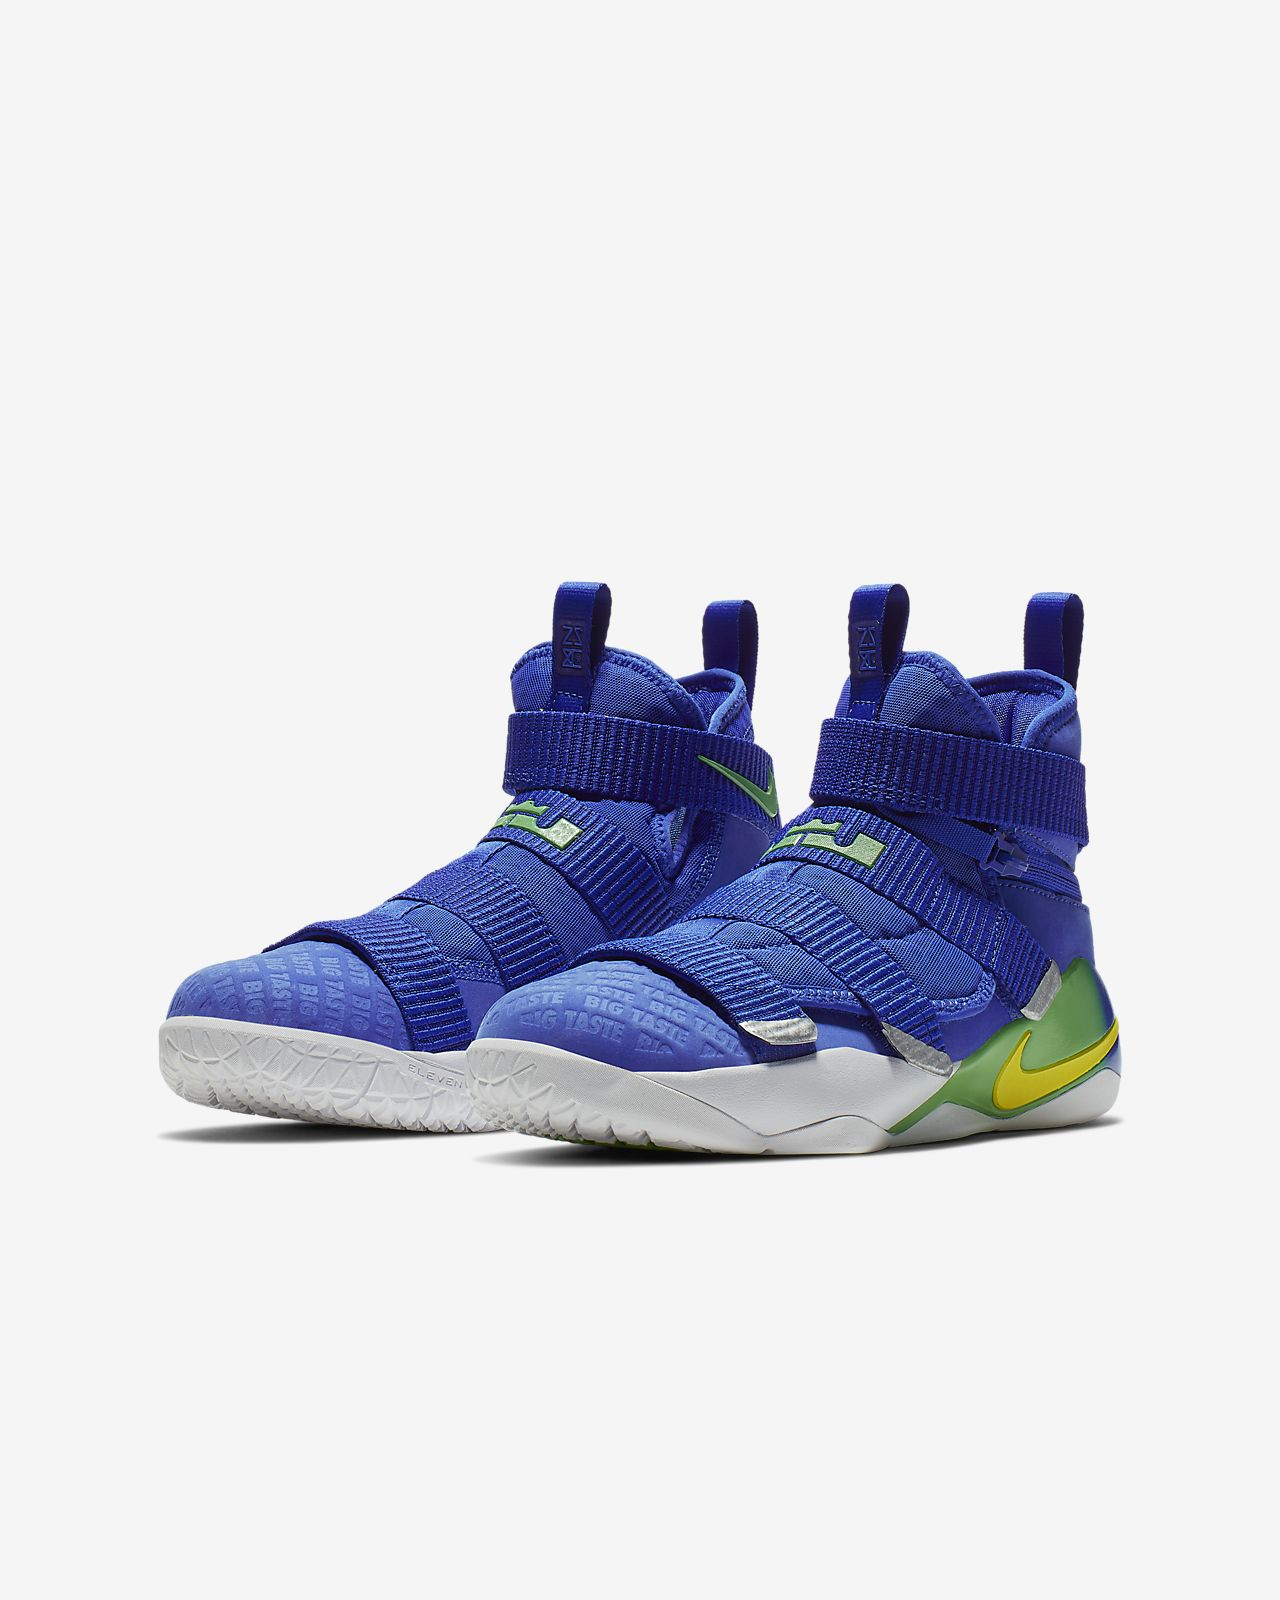 on sale a43a0 ec5d9 ... LeBron Soldier 11 FlyEase Big Kids  Basketball Shoe